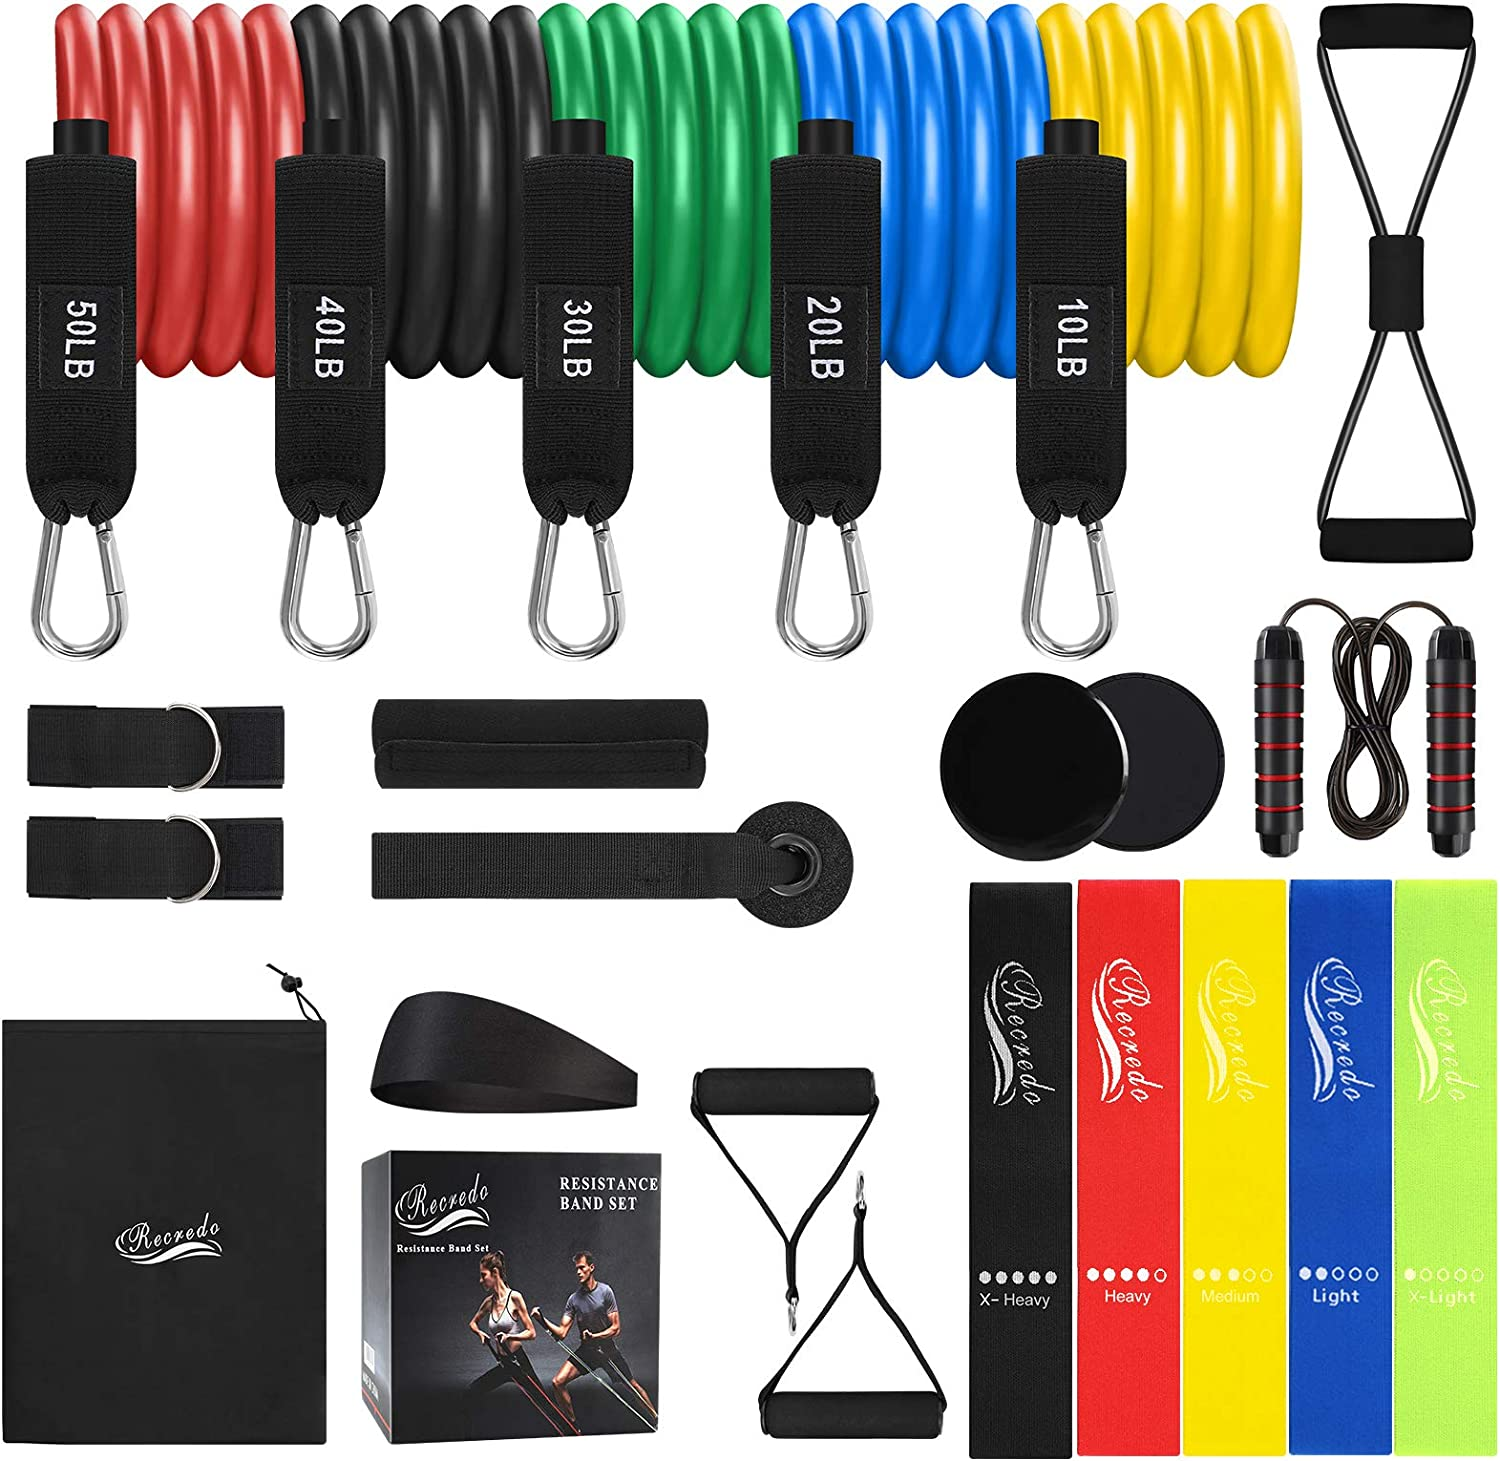 Resistance Bands Set 22pcs, Workout Bands with Handles, 5 Stackable Exercise Bands, 5 Loop Resistance Bands, Core Sliders, Door Anchor, Ankle Straps, Jump Rope, Headband, for Resistance Training